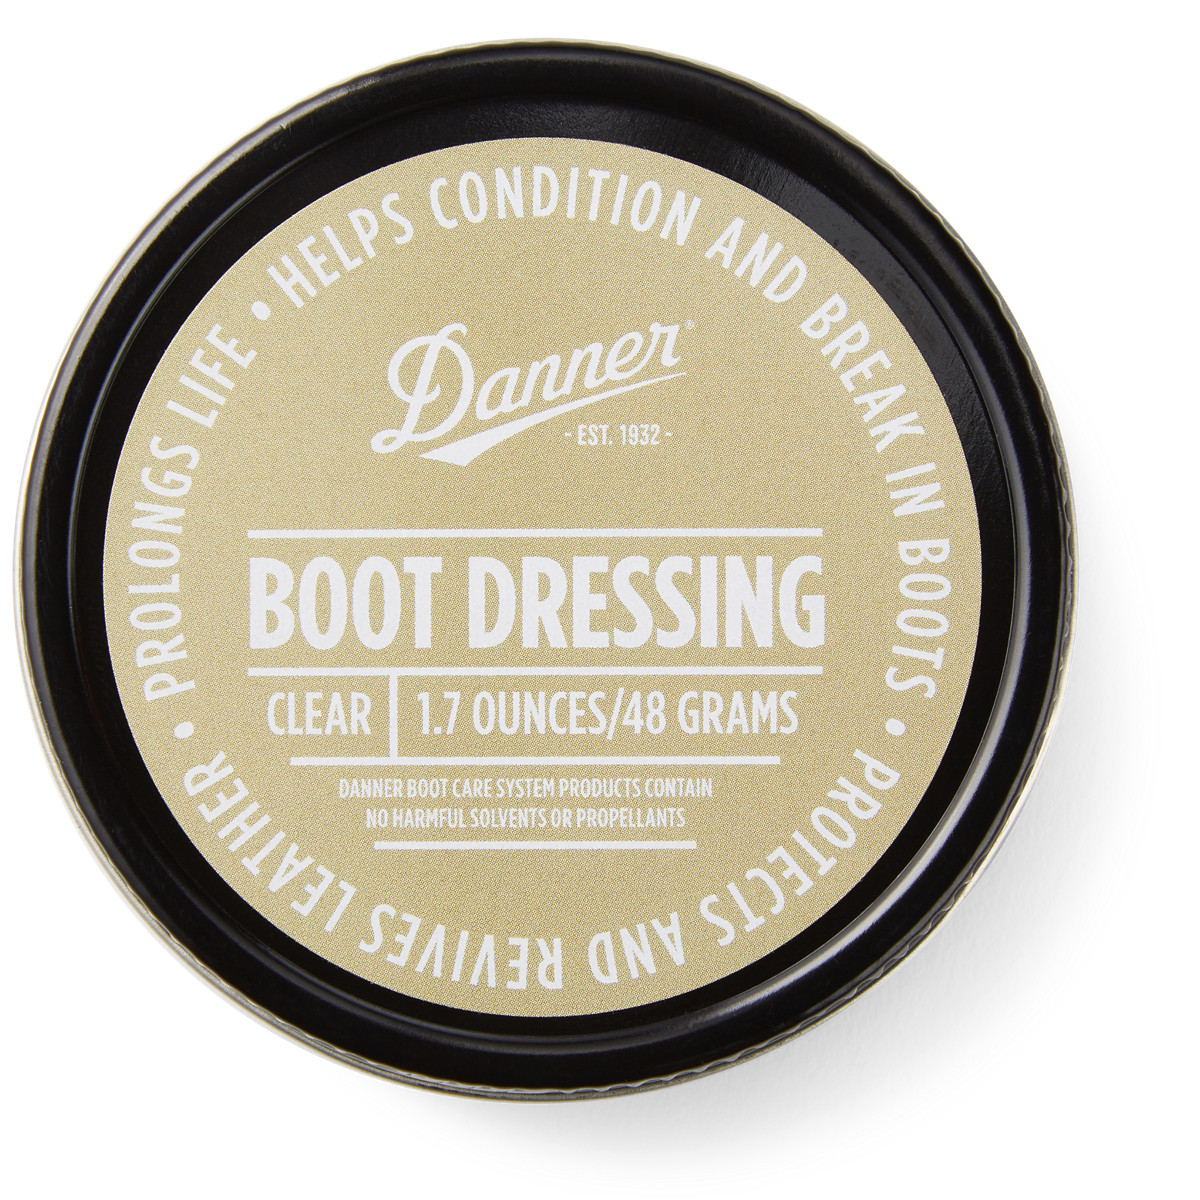 How To Care For Danner Boots